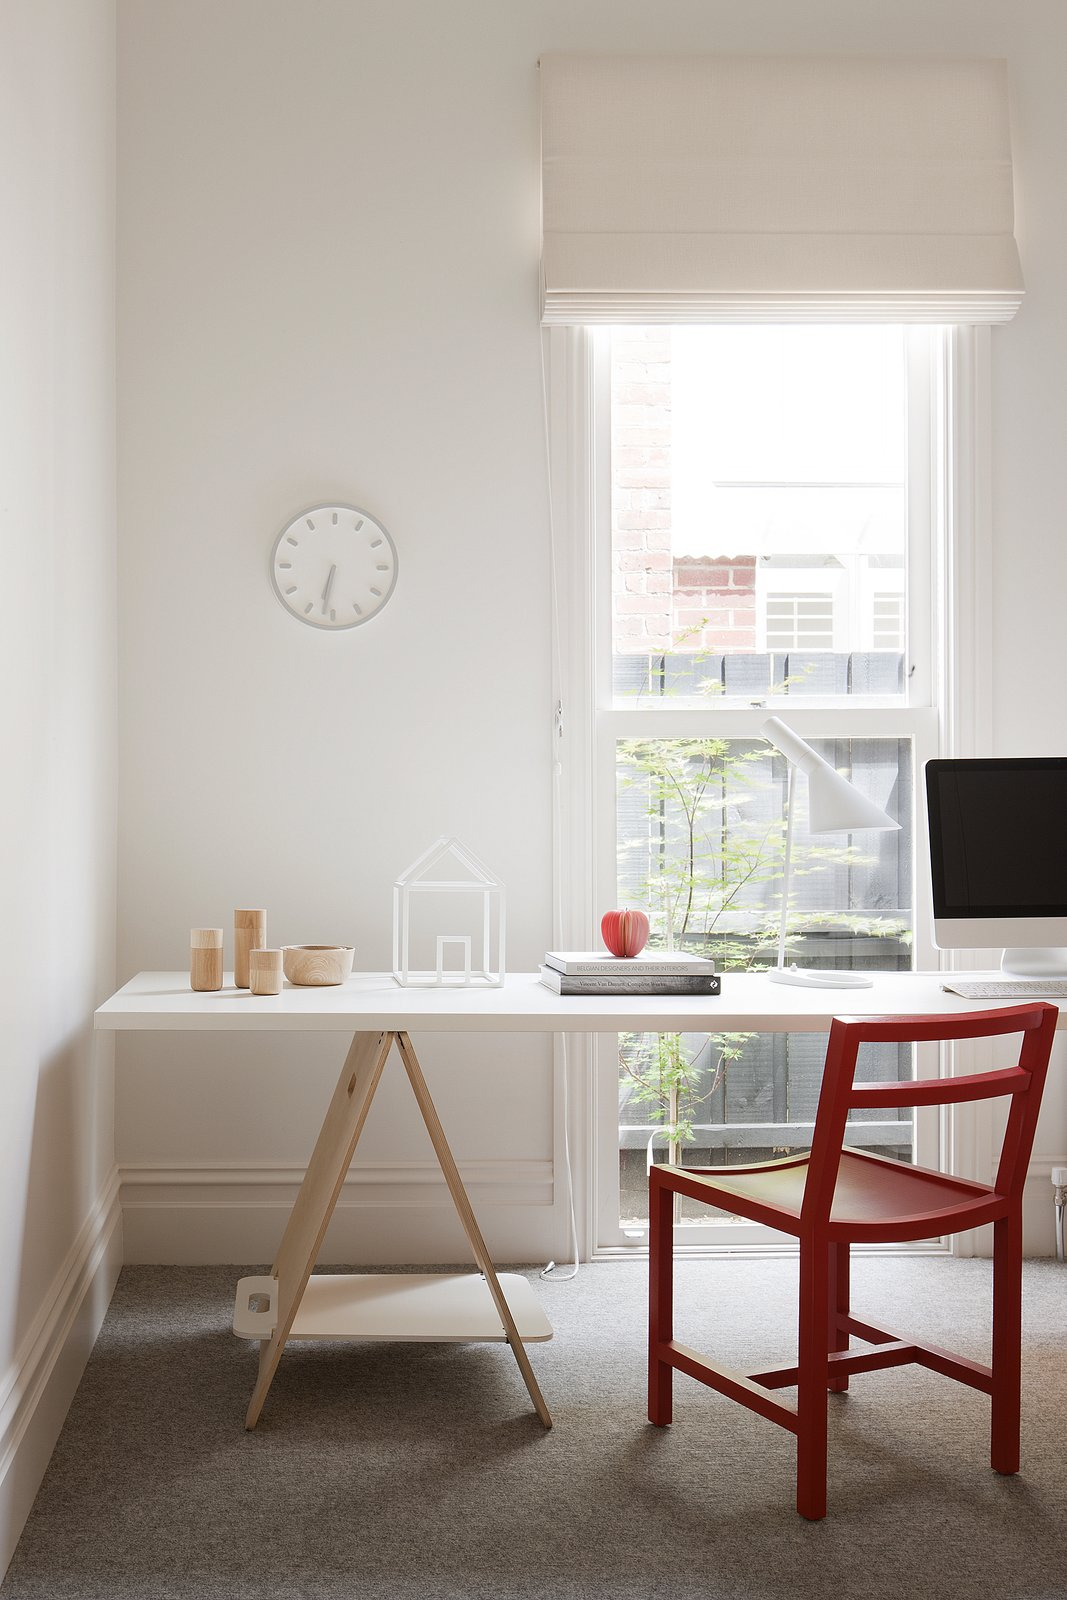 The study has a fun, playful atmosphere thanks to a red Square Dining Chair from MAP, a Tempo wall clock by Naoto Fukasawa for Magis, and house sculpture also from David Band.